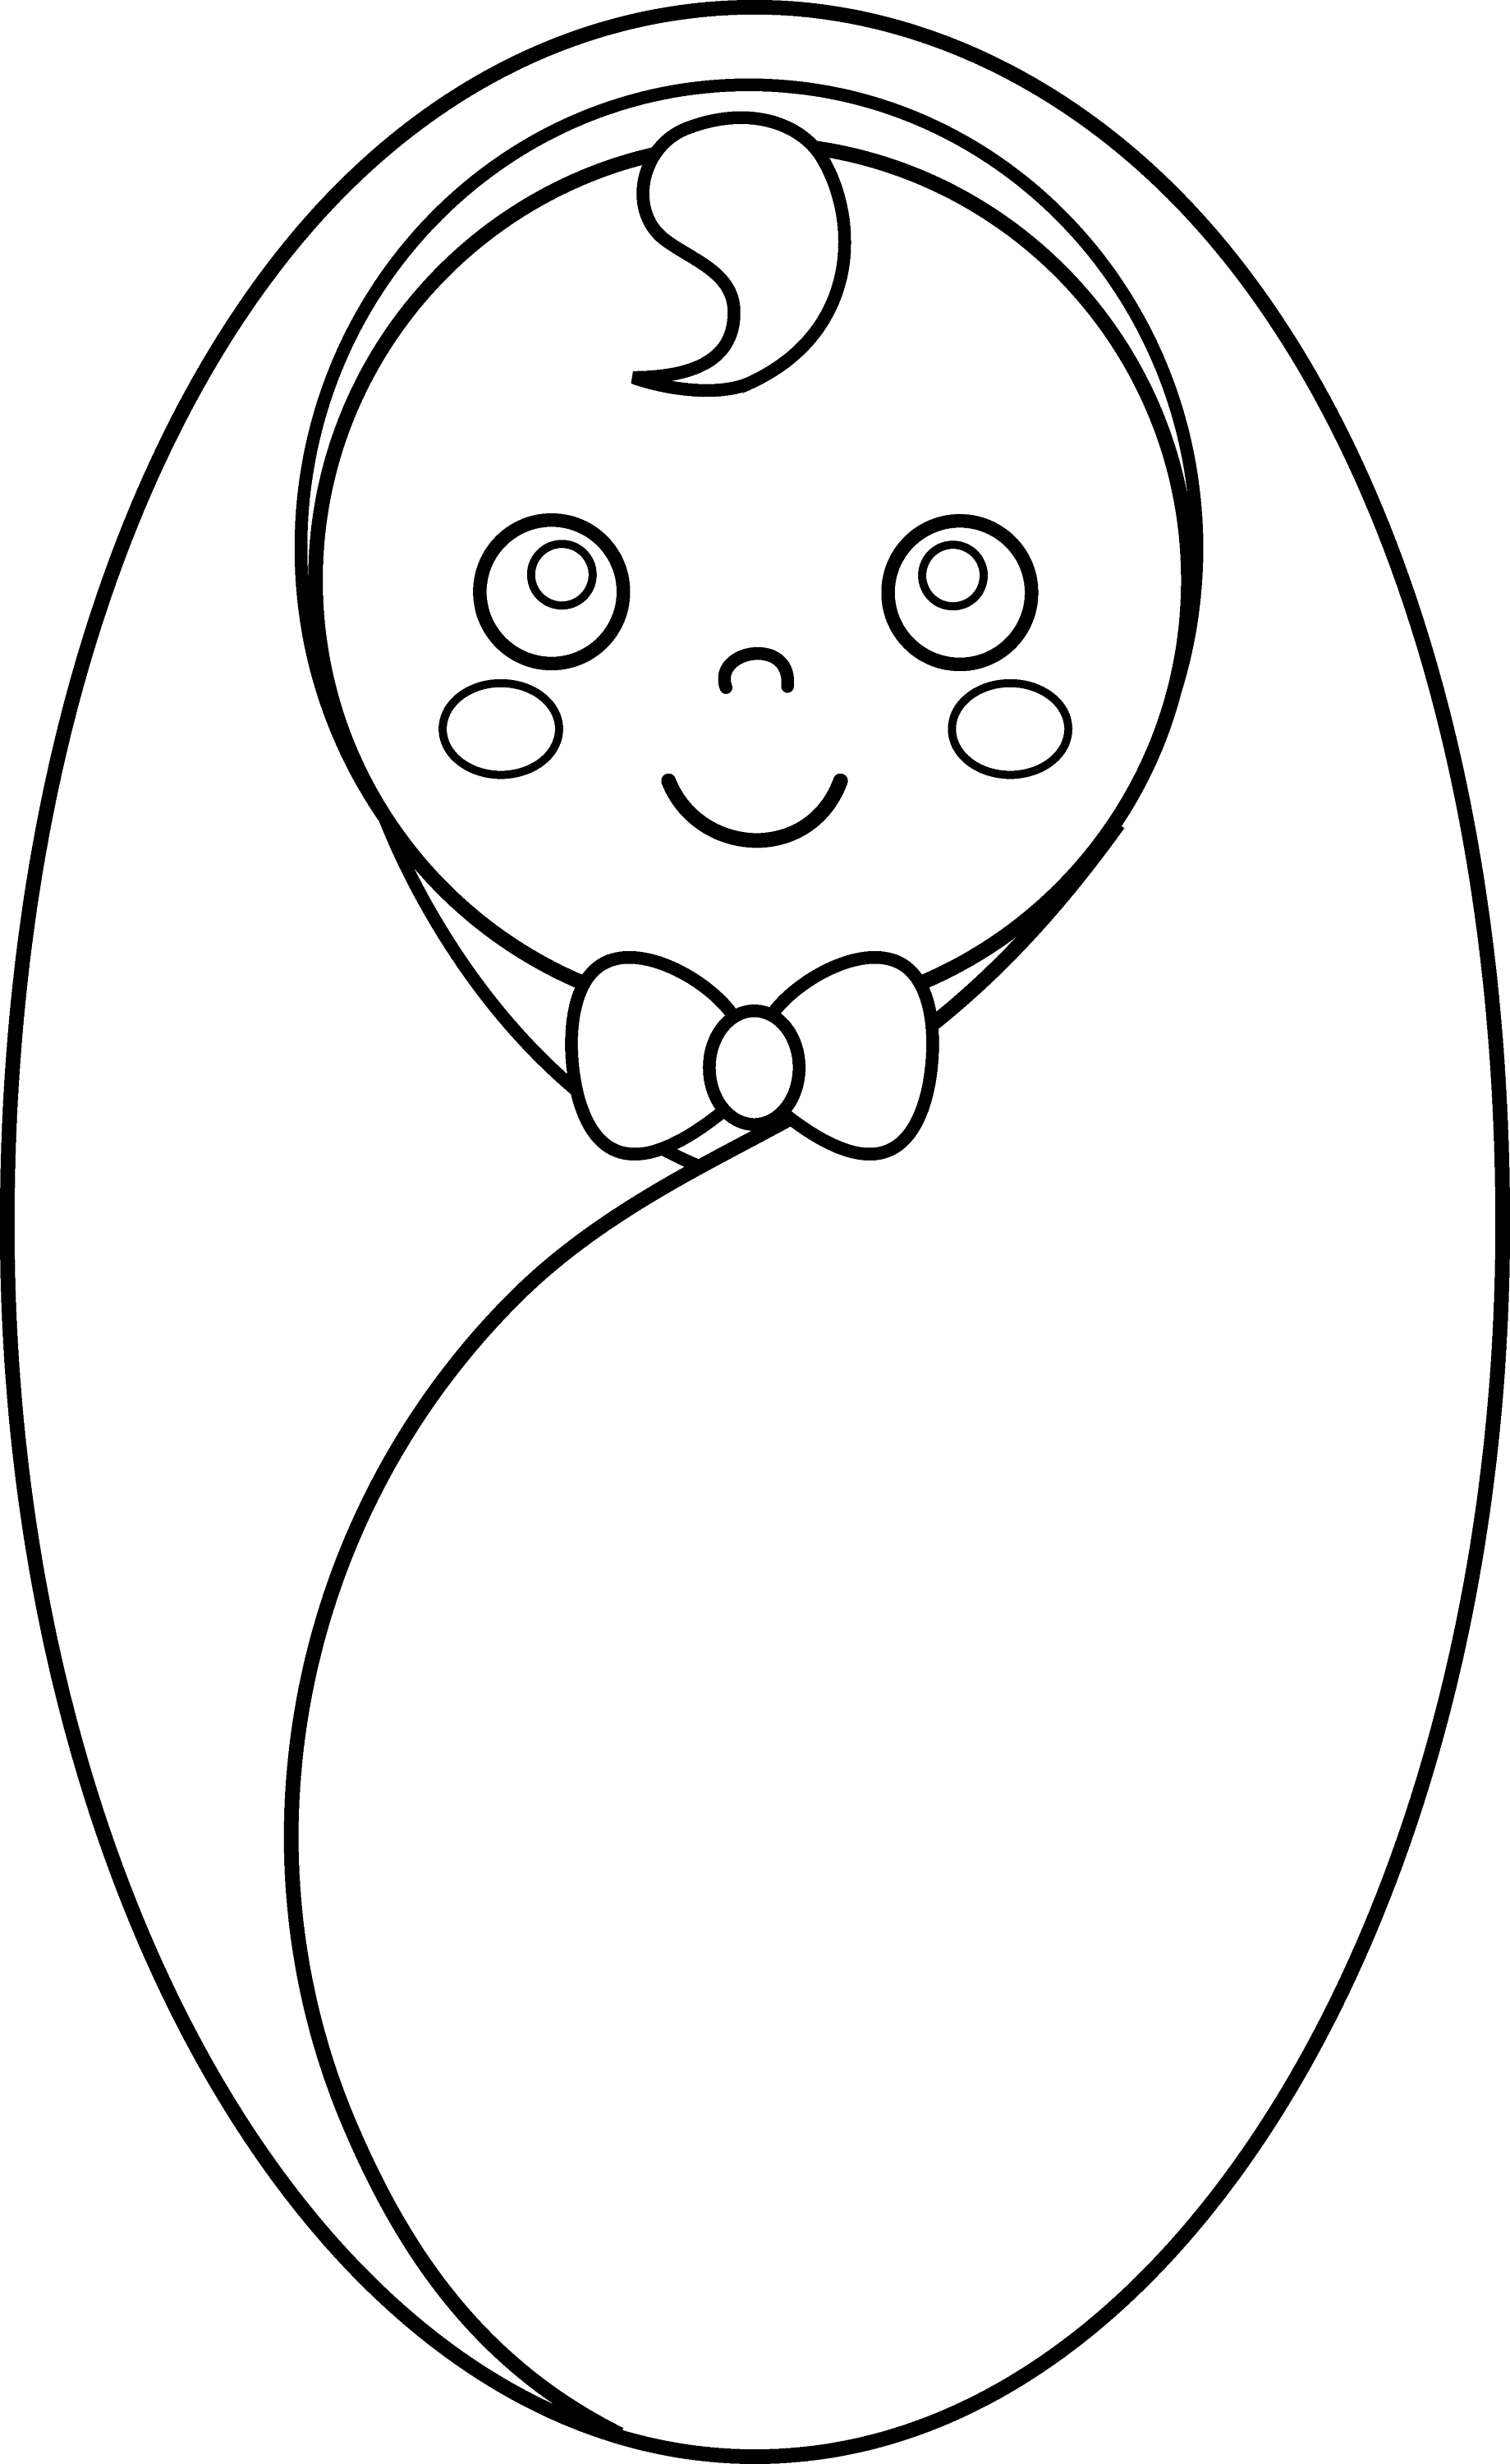 Line Art Baby : Baby wrapped in blanket coloring pages